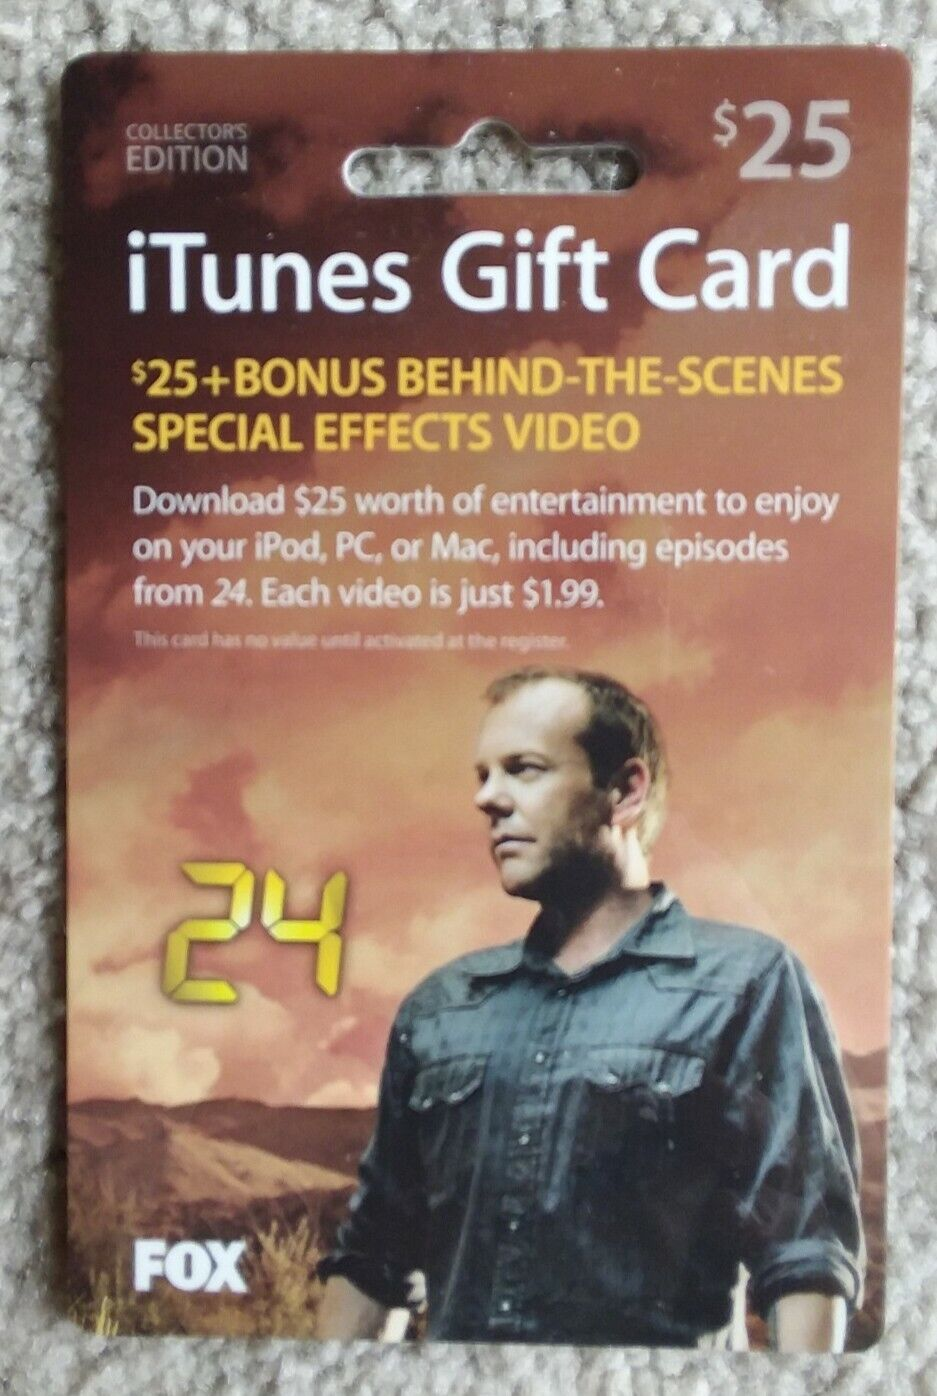 ITunes 24 TV Show KIEFER SUTHERLAND Gift Card COLLECTORS EDITION 2006 NO VALUE - $4.00